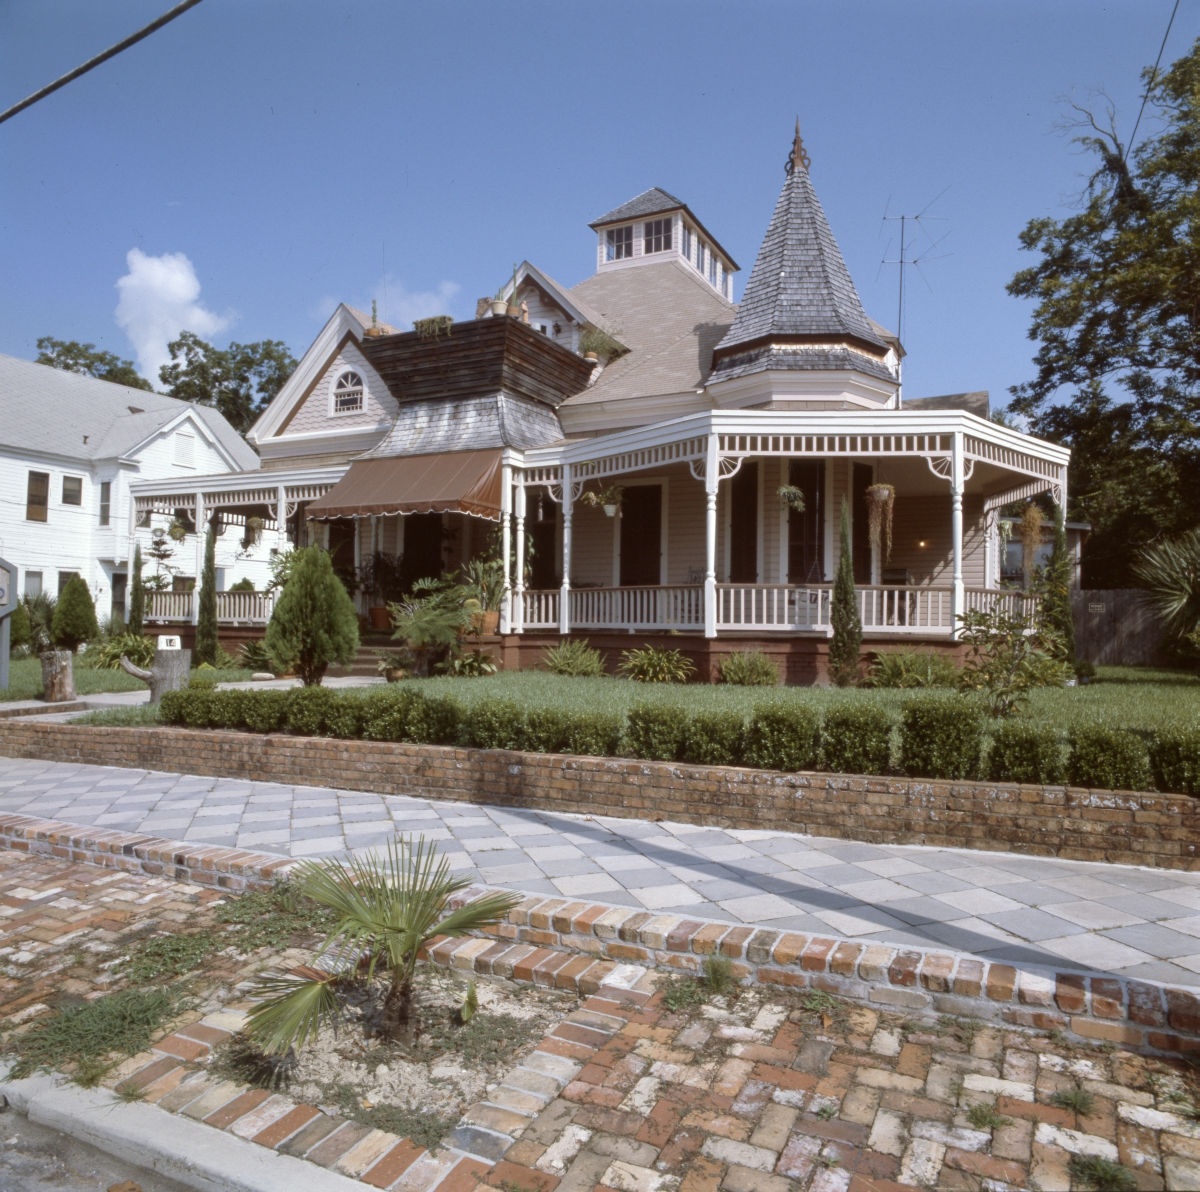 House at 14 W. Gadsden St. in the North Preservation District of Pensacola.